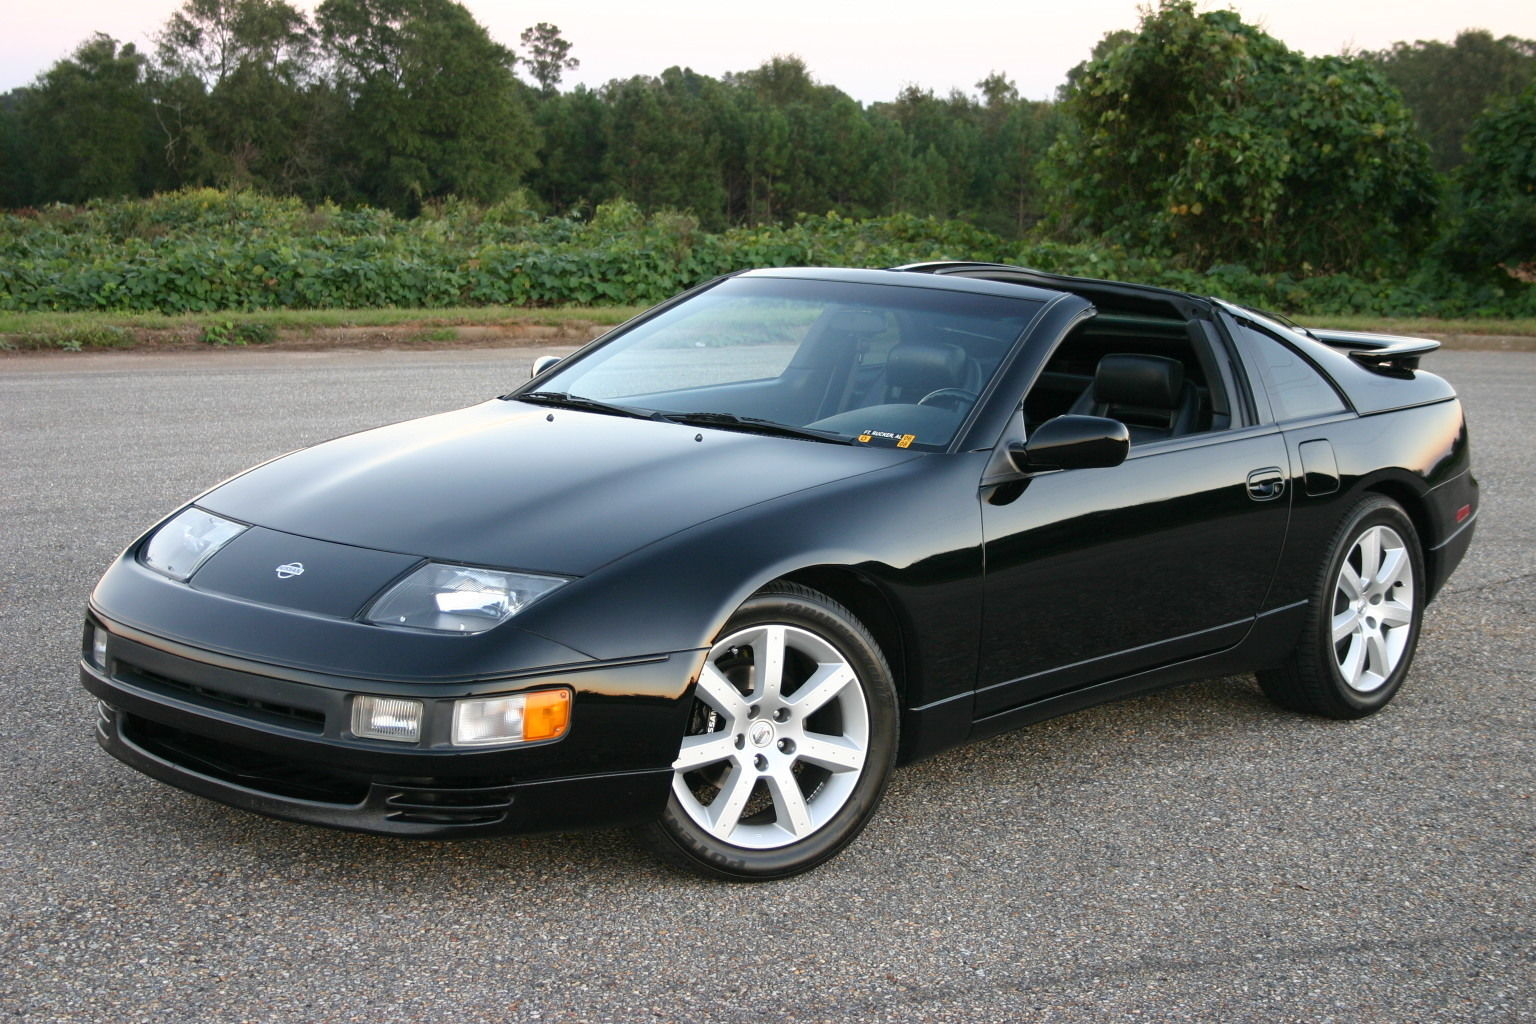 1994 nissan 300zx twin turbo collectors show car for sale in enterprise alabama united states. Black Bedroom Furniture Sets. Home Design Ideas